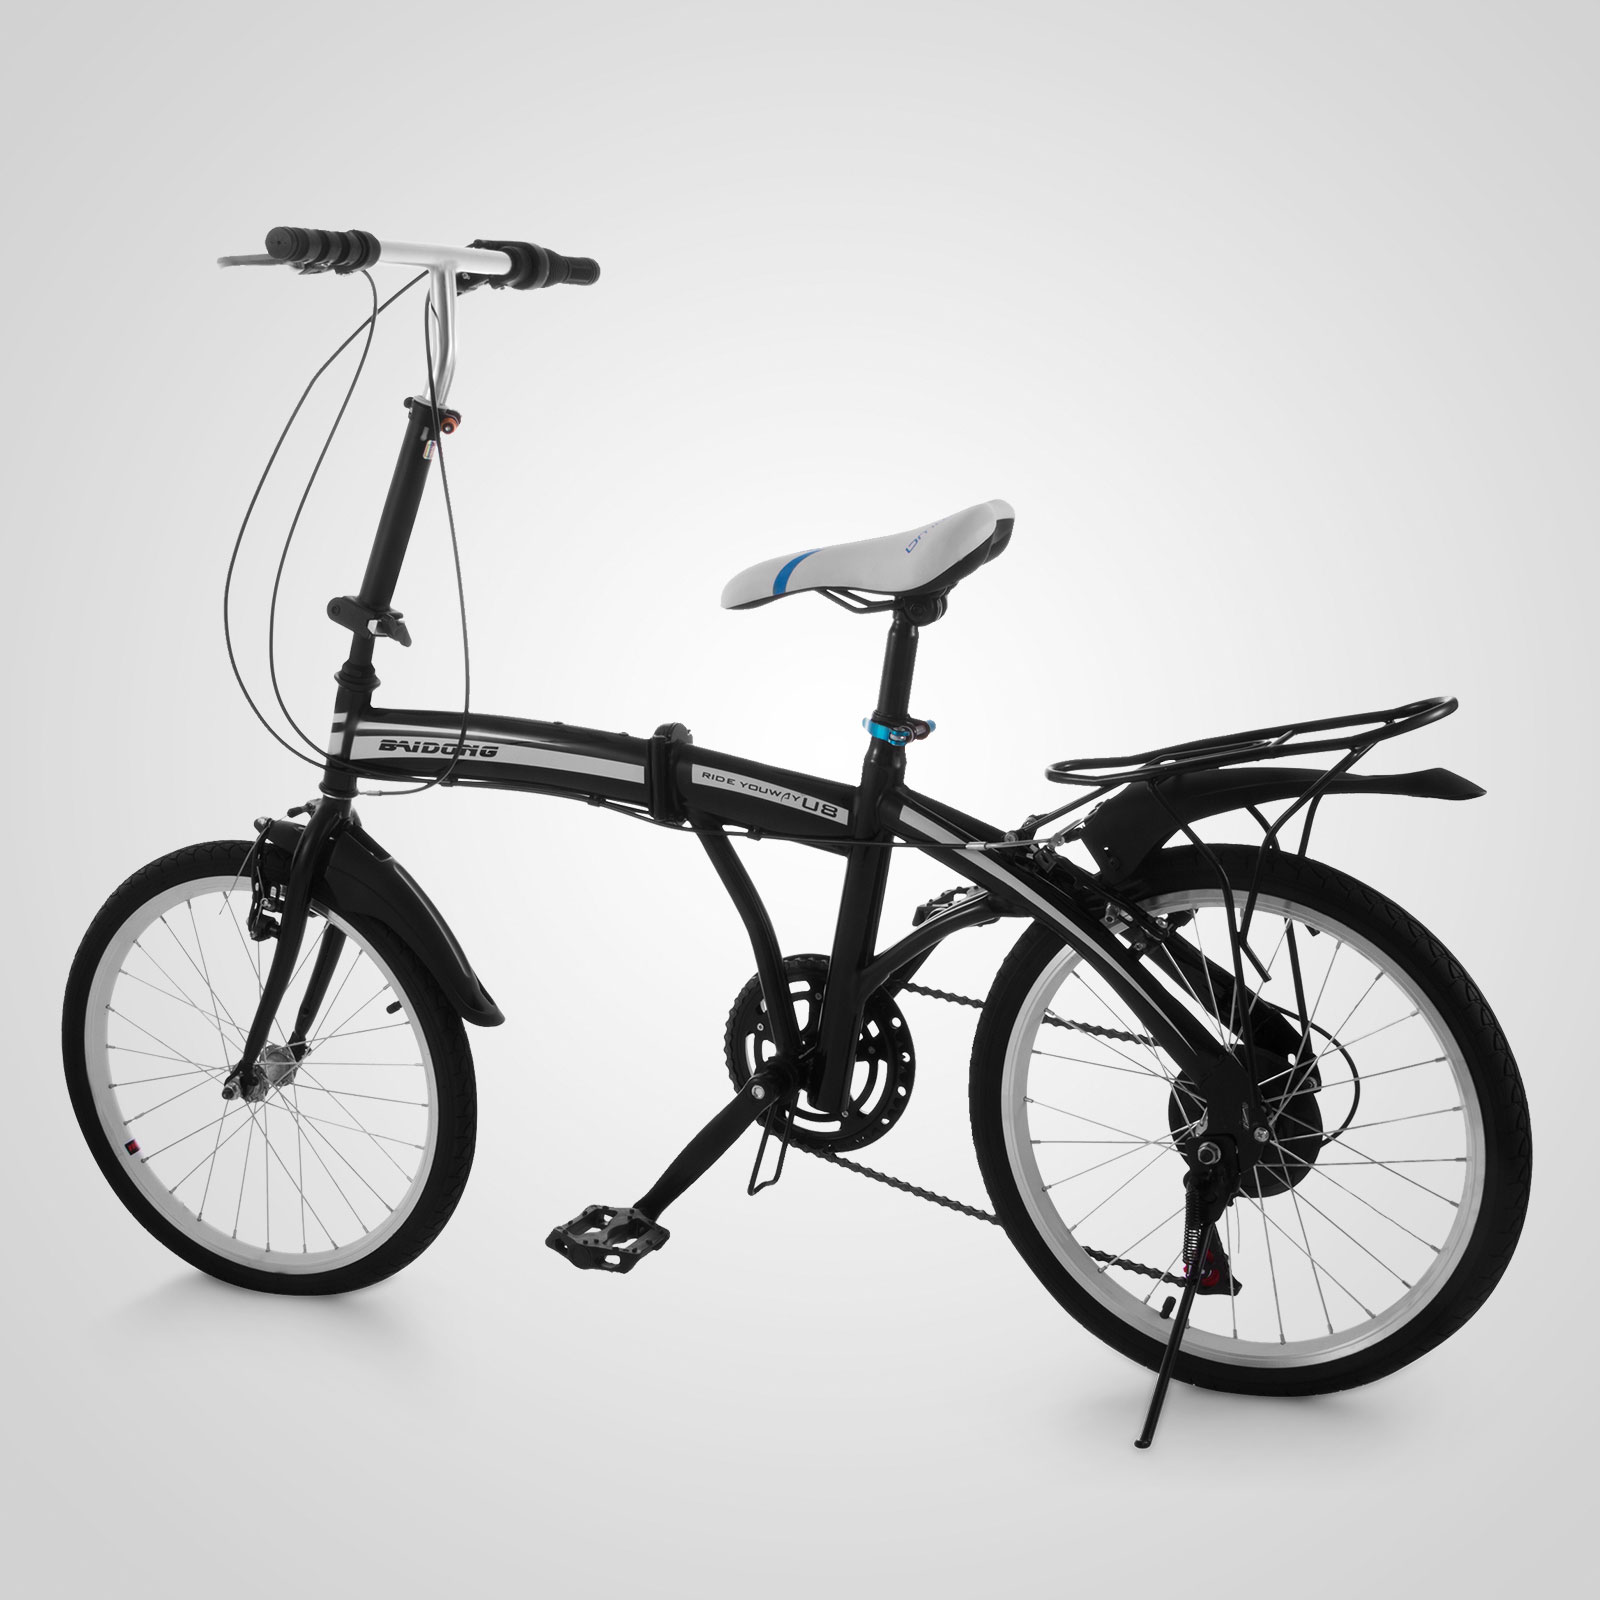 20 mini folding bike 6 speed foldable bicycle storage. Black Bedroom Furniture Sets. Home Design Ideas